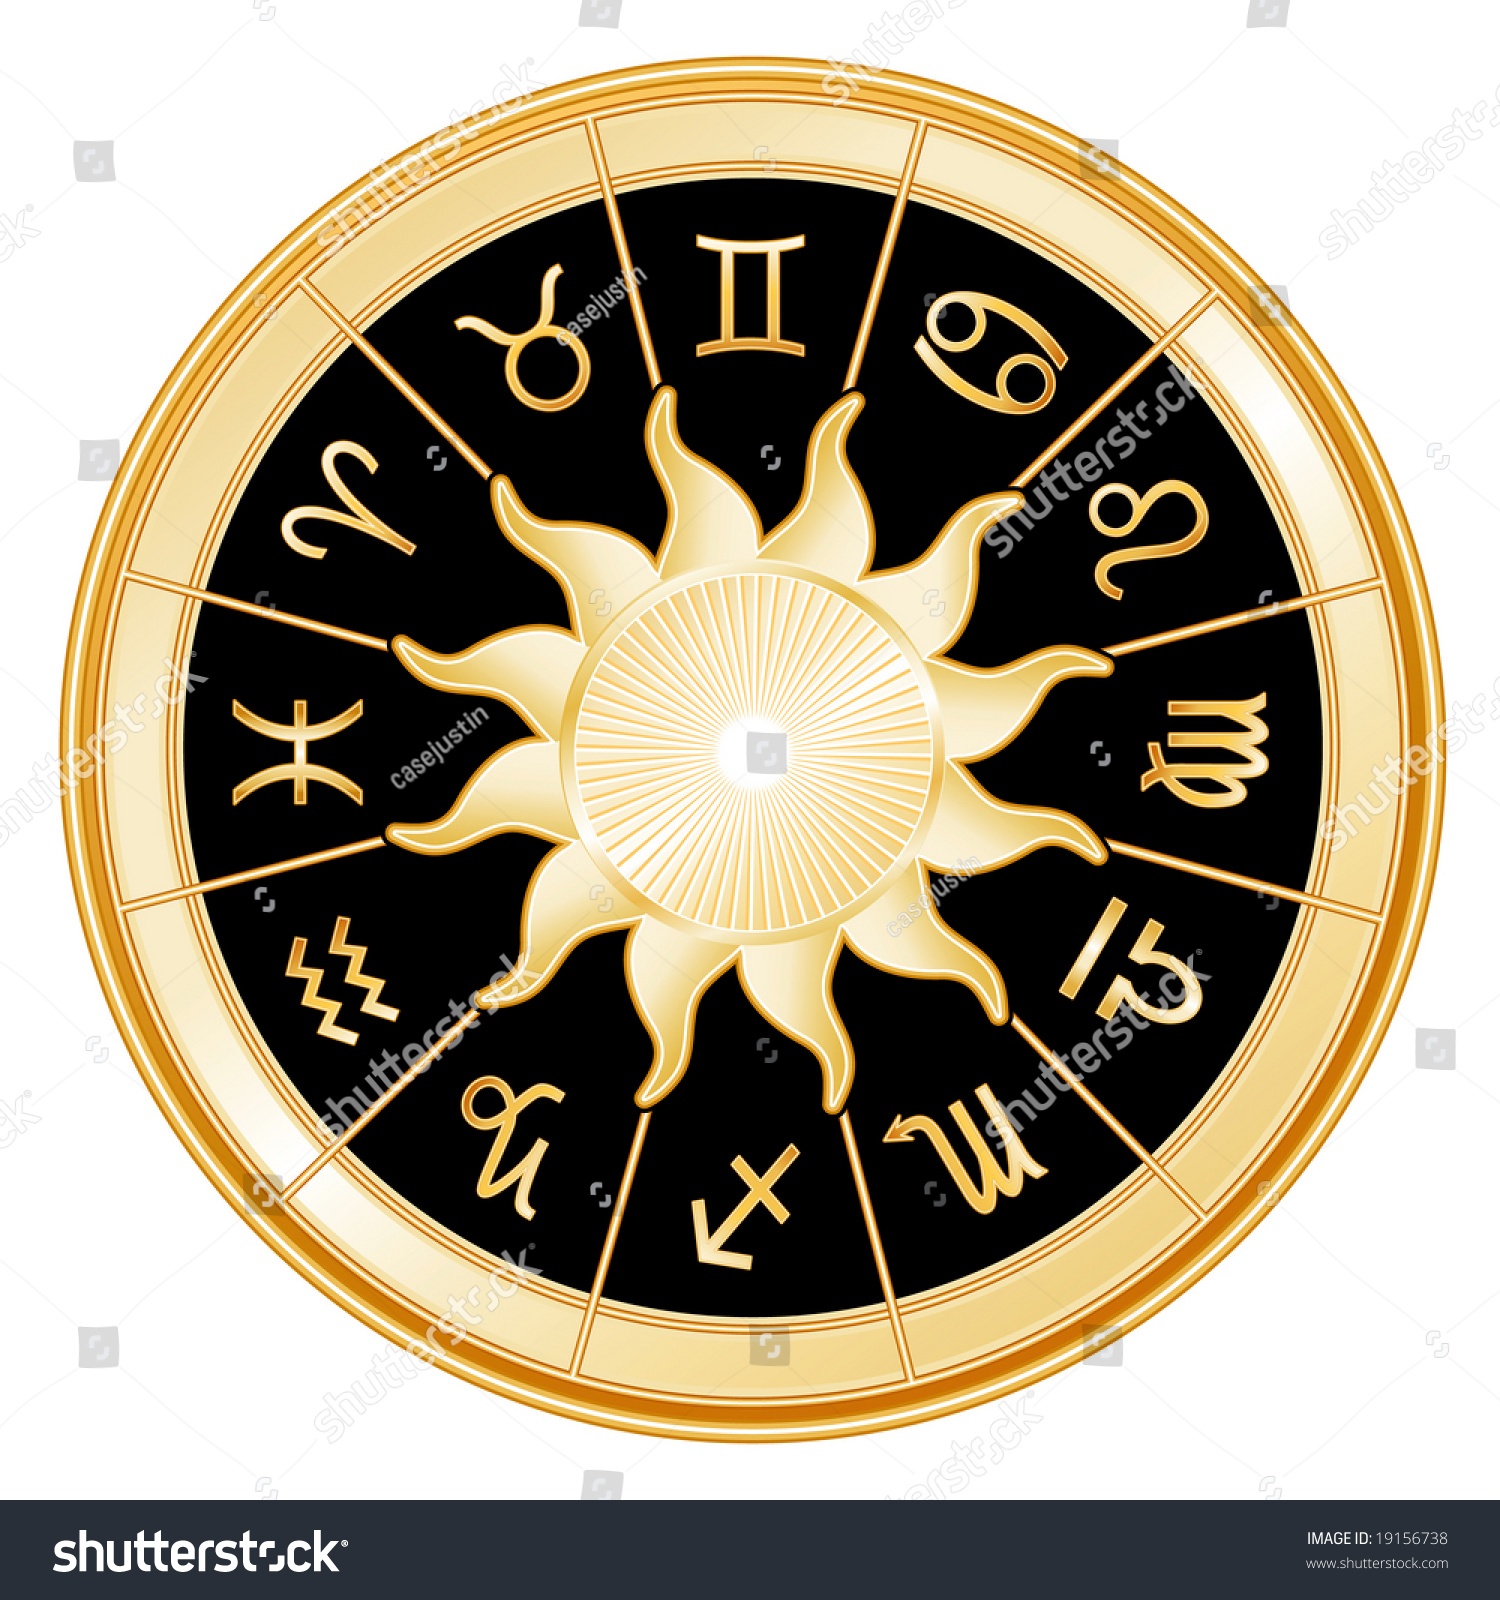 Horoscope Signs Zodiac 12 Astrology Symbols Stock Illustration